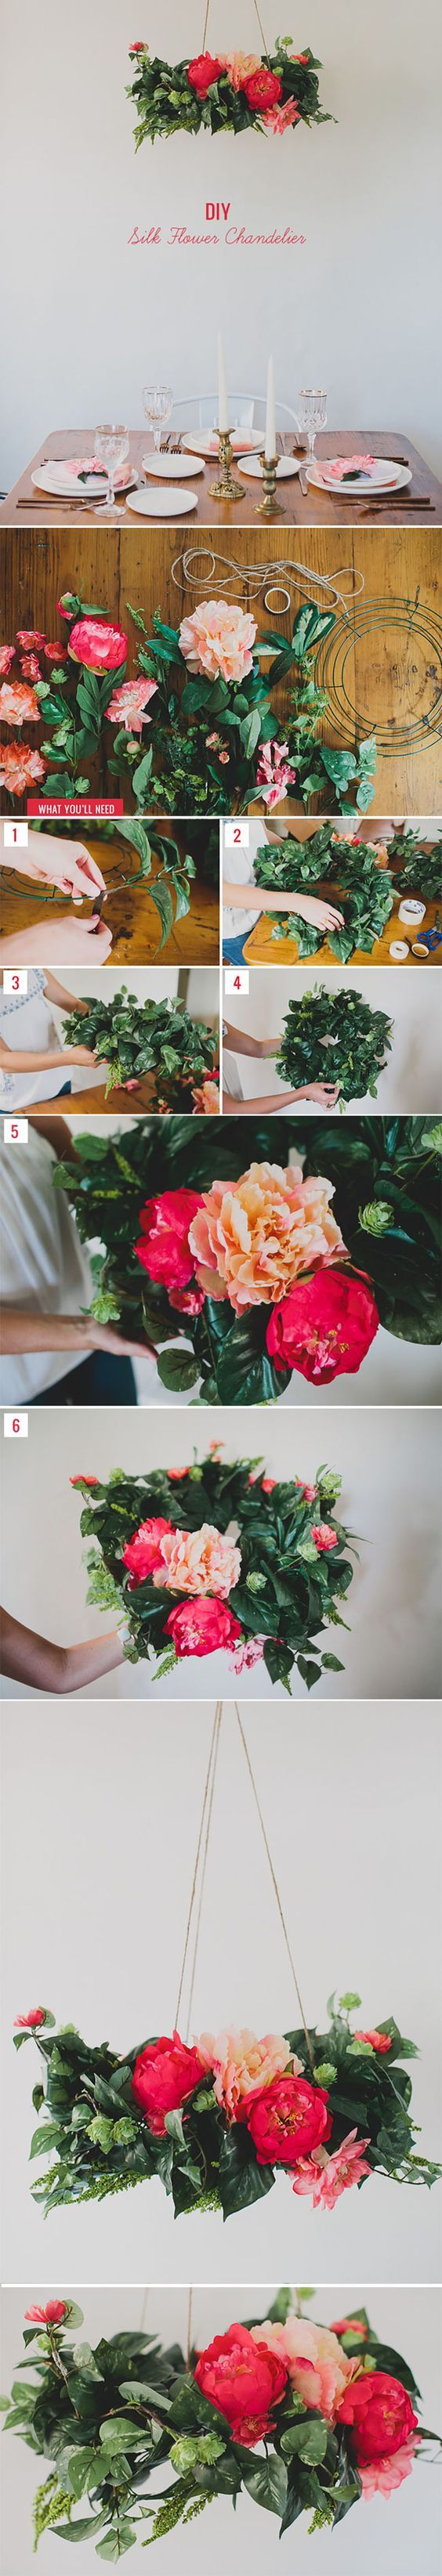 DIY Silk Flower Chandelier / http://www.himisspuff.com/diy-wedding-centerpieces-on-a-budget/27/